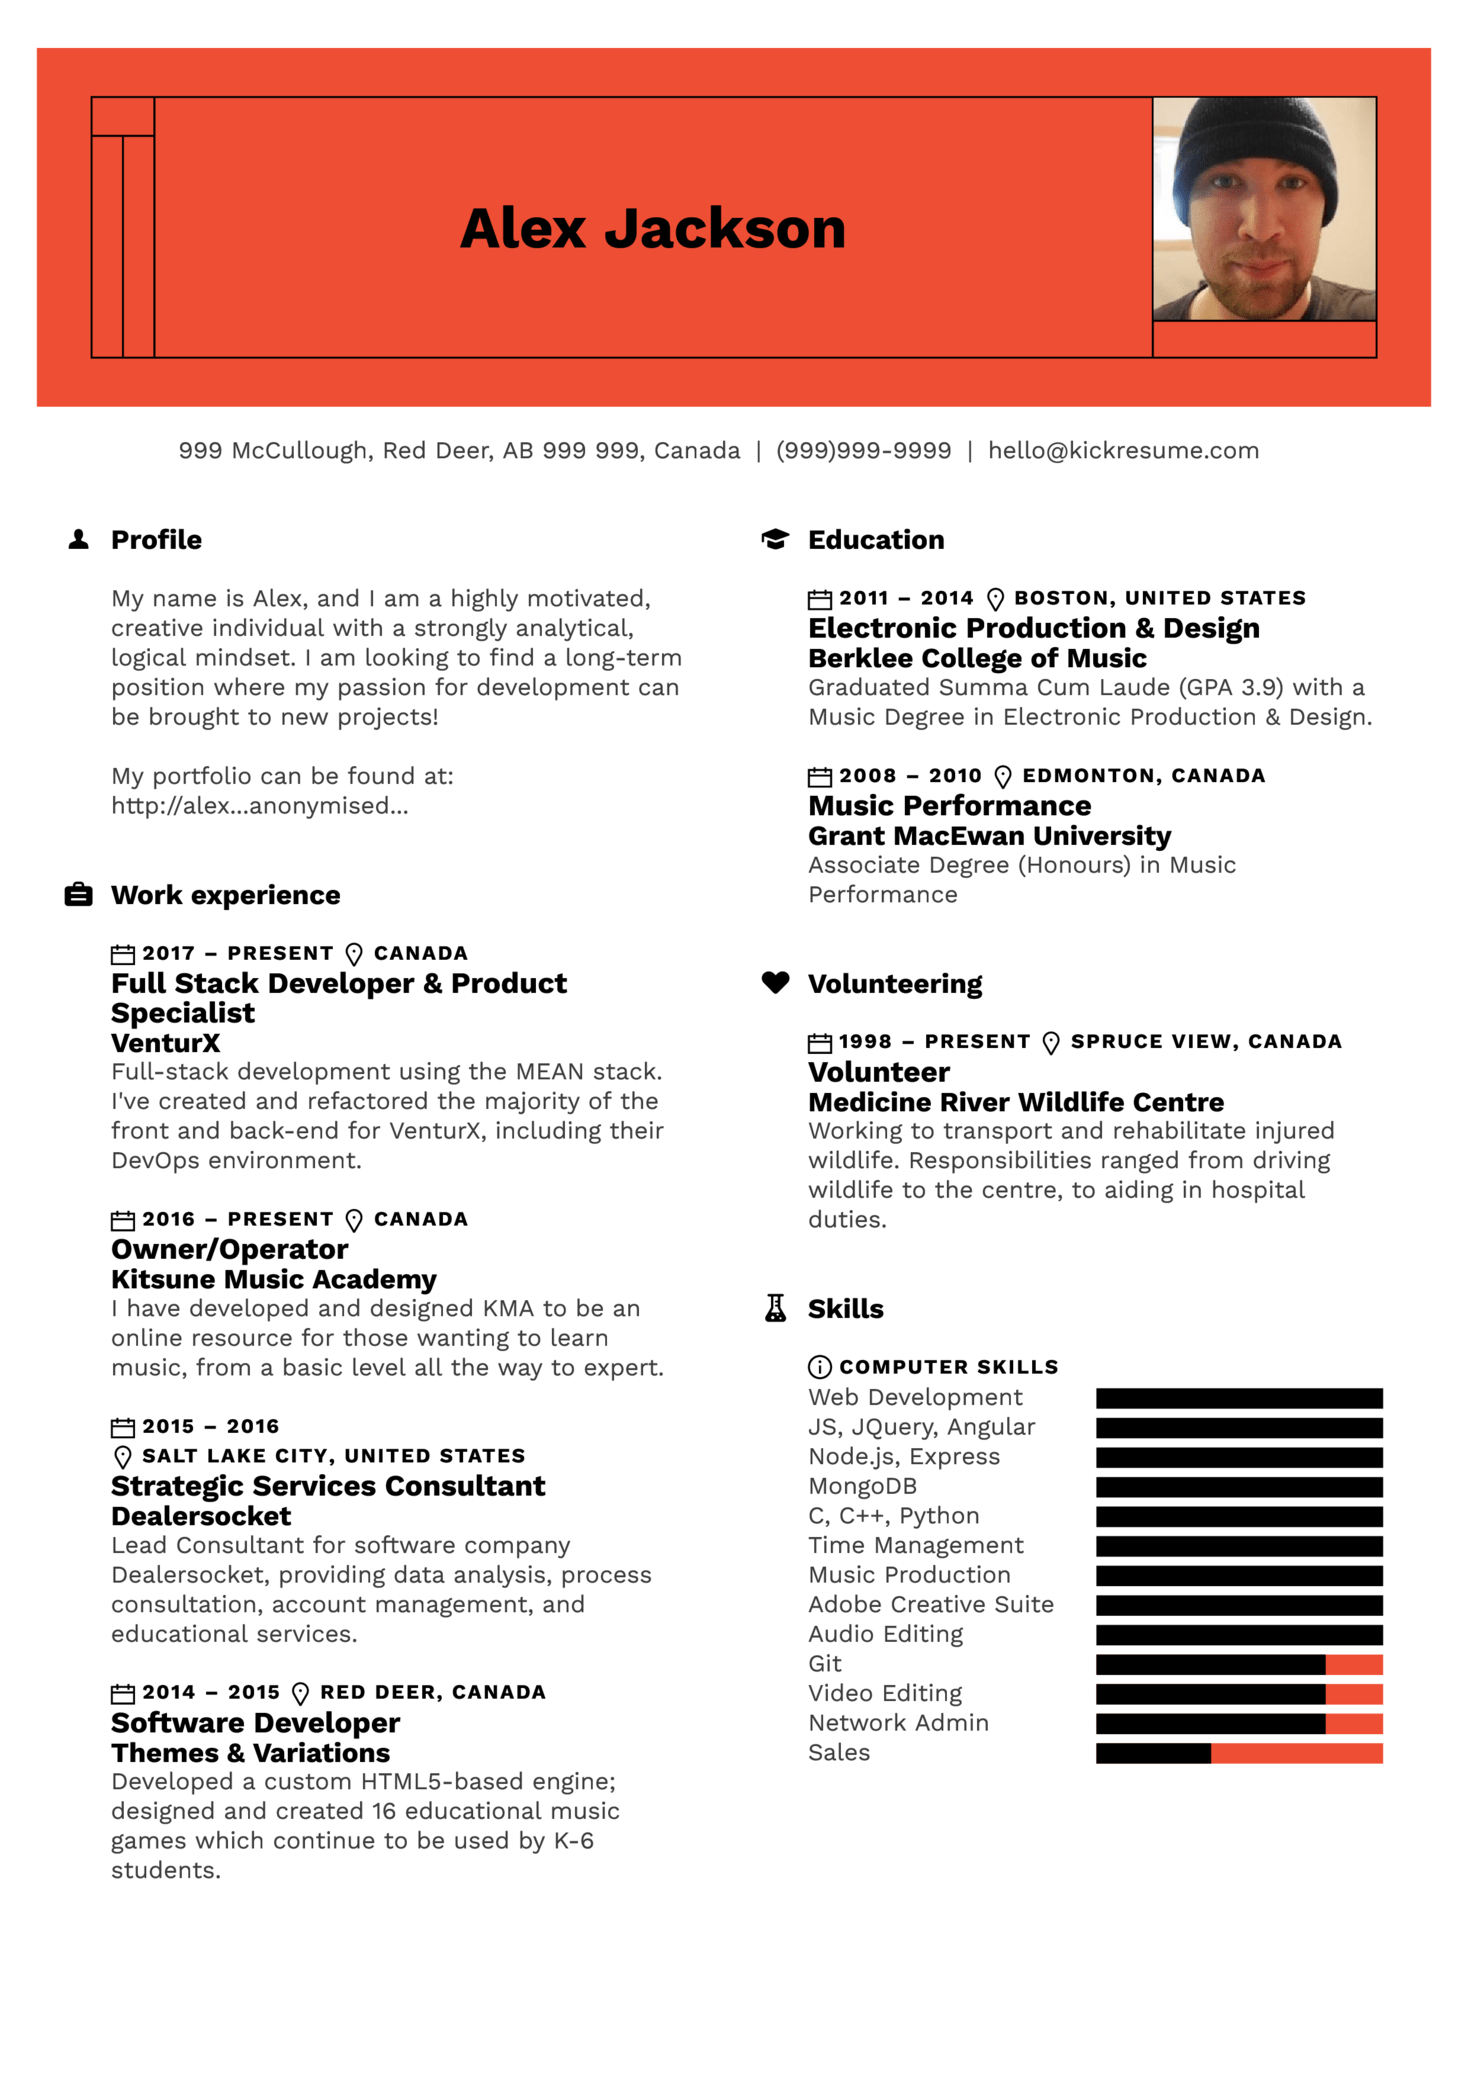 Product Specialist Resume Template (parte 1)